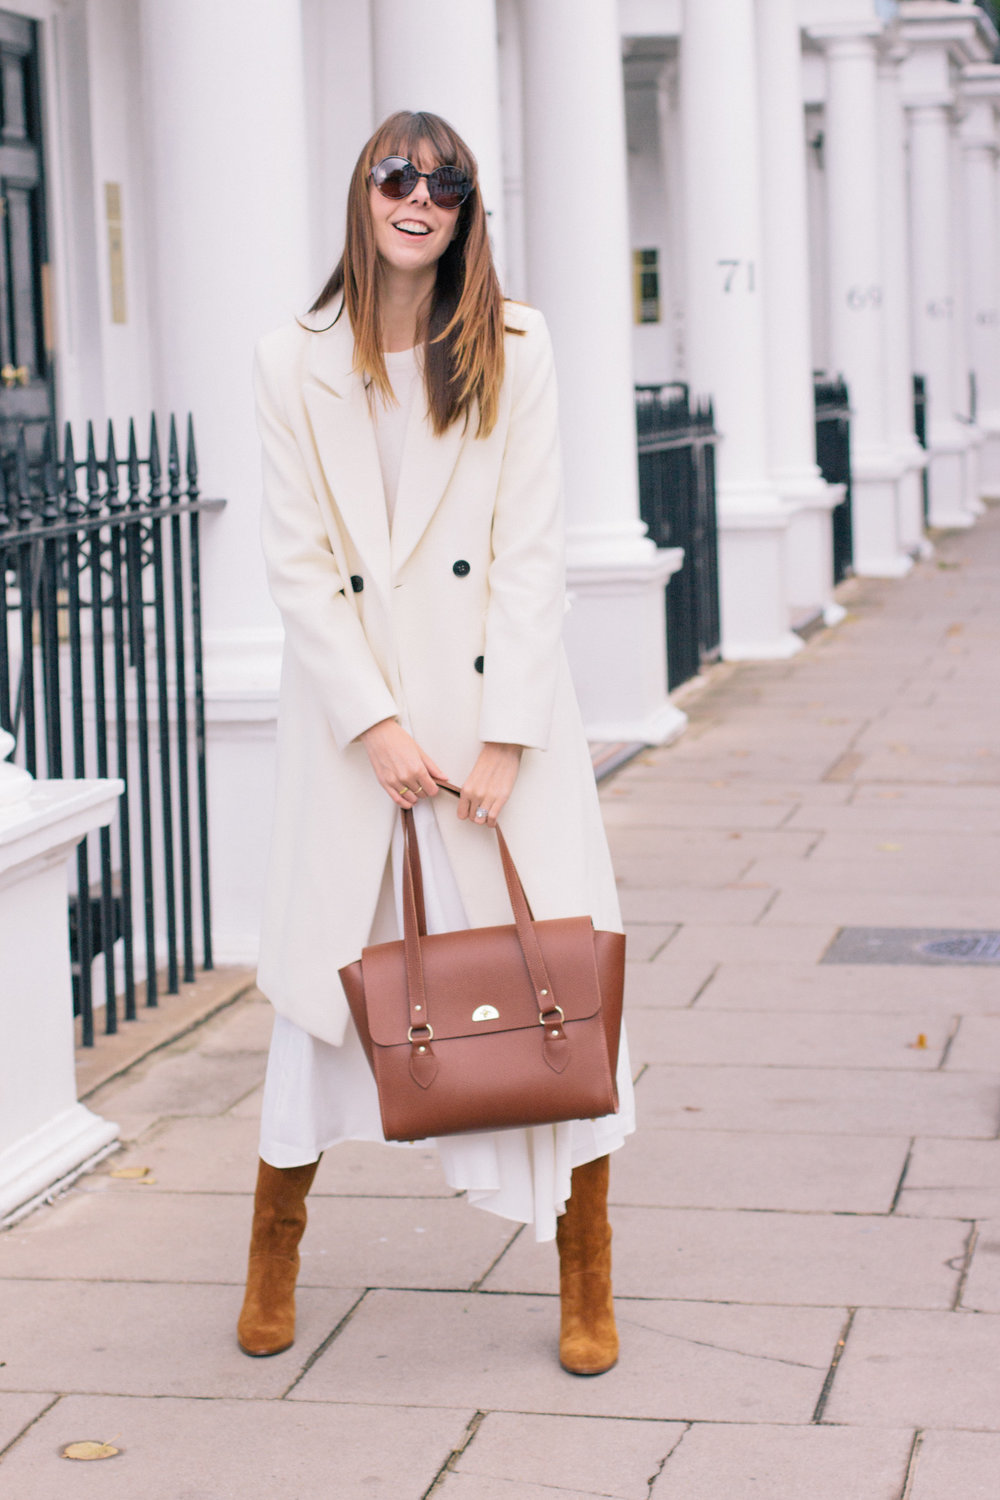 Cambridge Satchel Company Emily Bag Sundays and Somedays-16.jpg